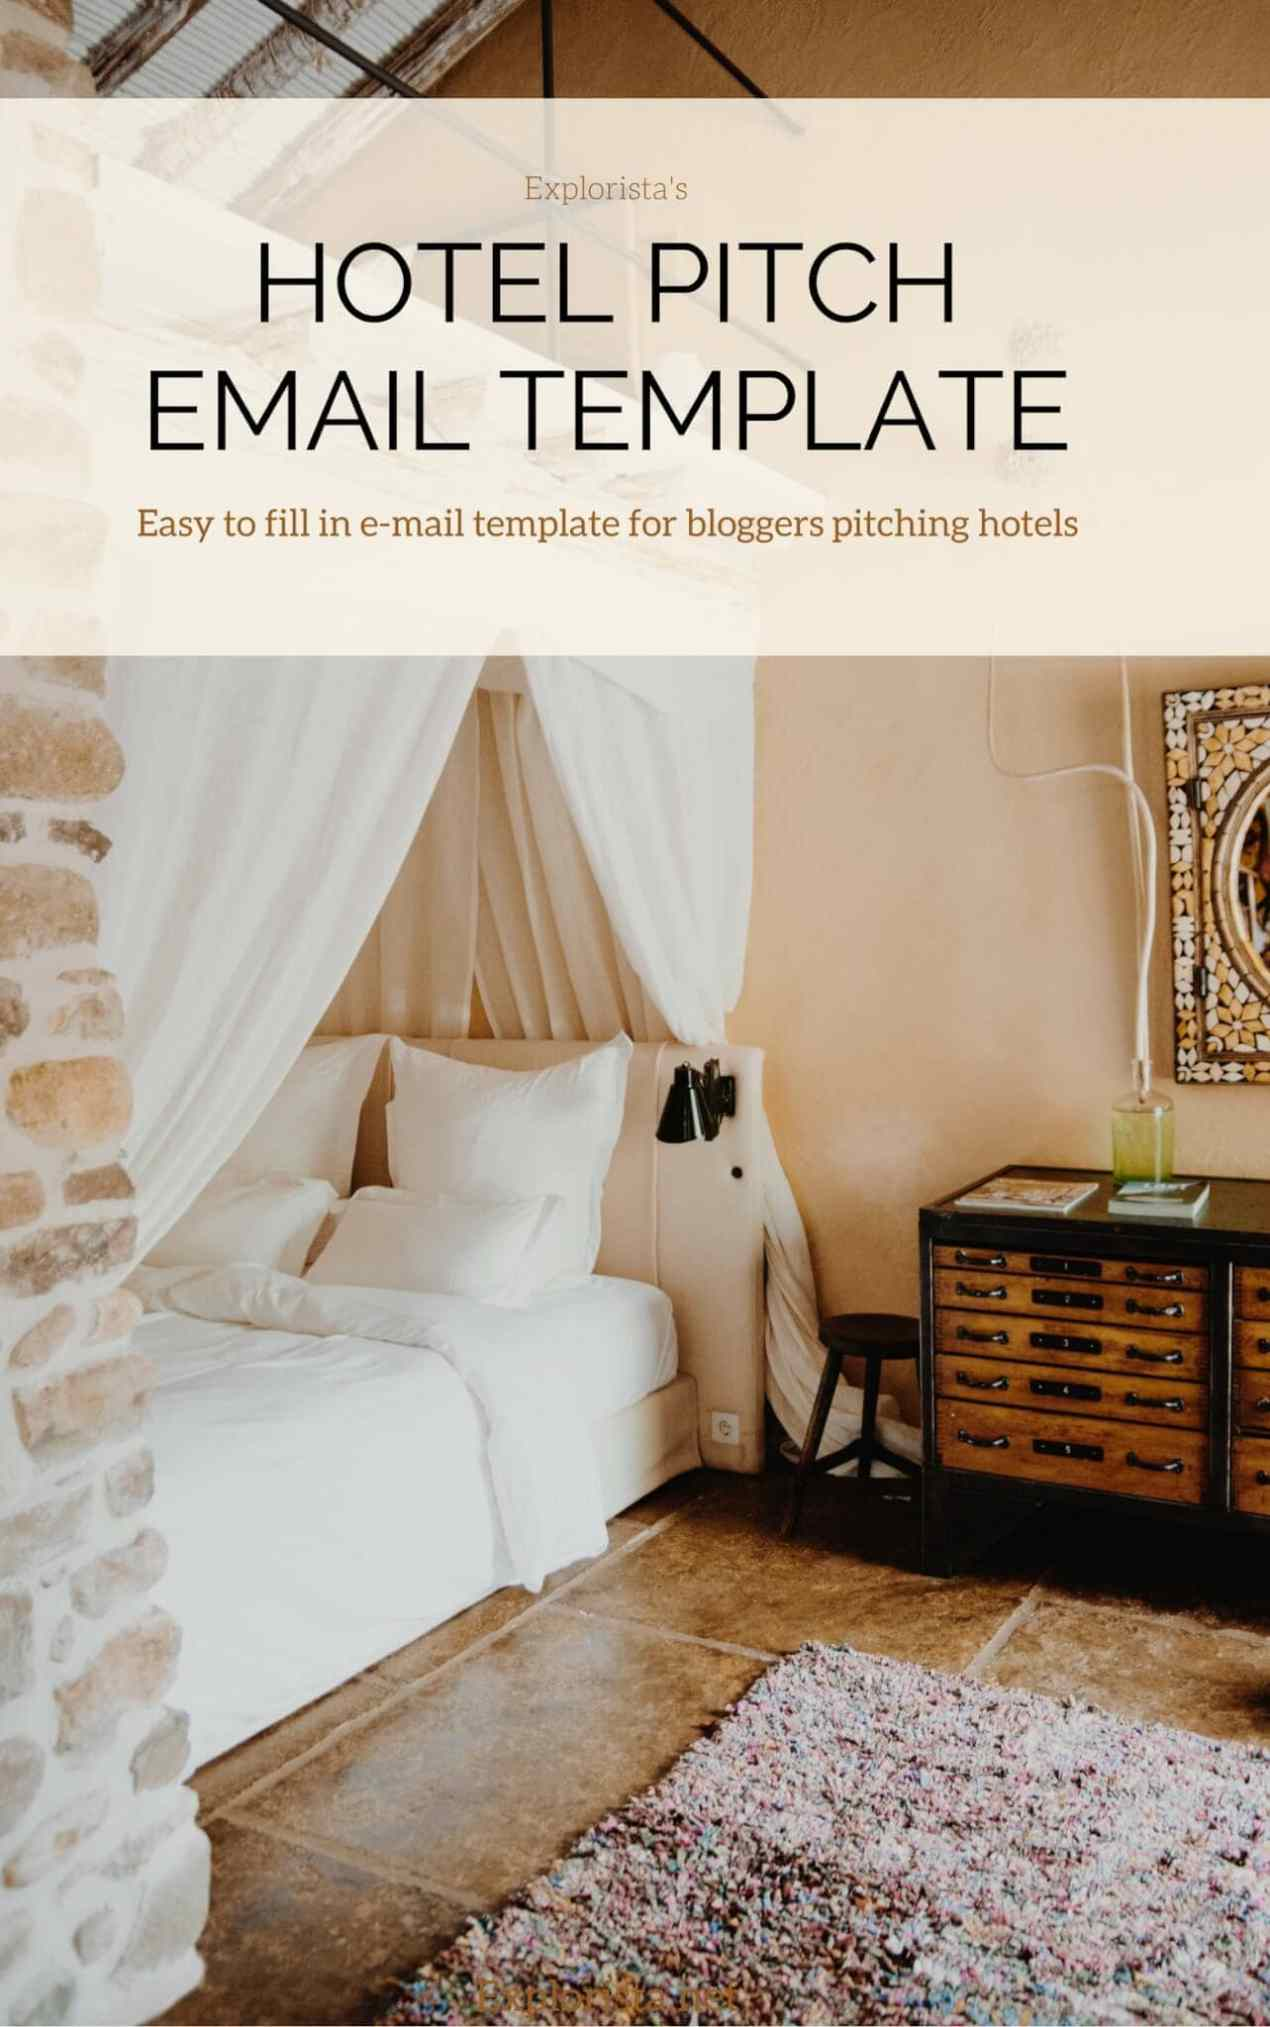 This guide tells you how you can work with hotels as a blogger. It includes tips and a handy email template so you can send smashing pitches.